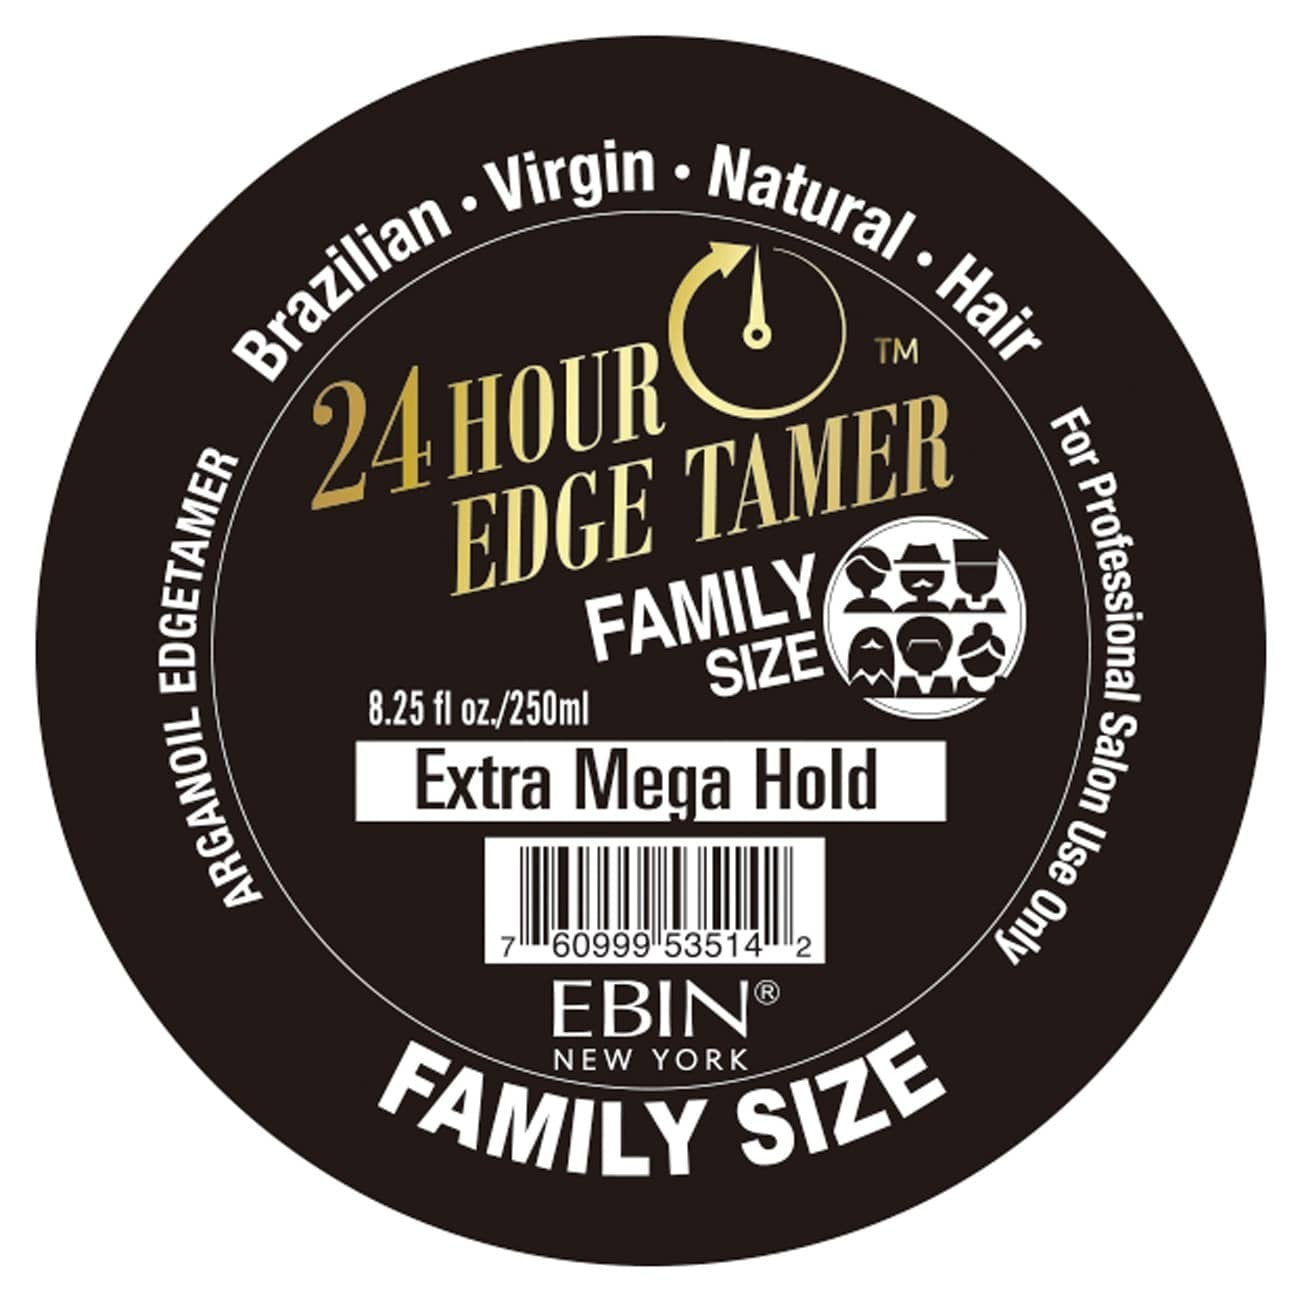 EBIN New York Argan Oil Edge Tamer Extra Mega Hold (Edge Control) 8.25 Oz - Beauty Empire